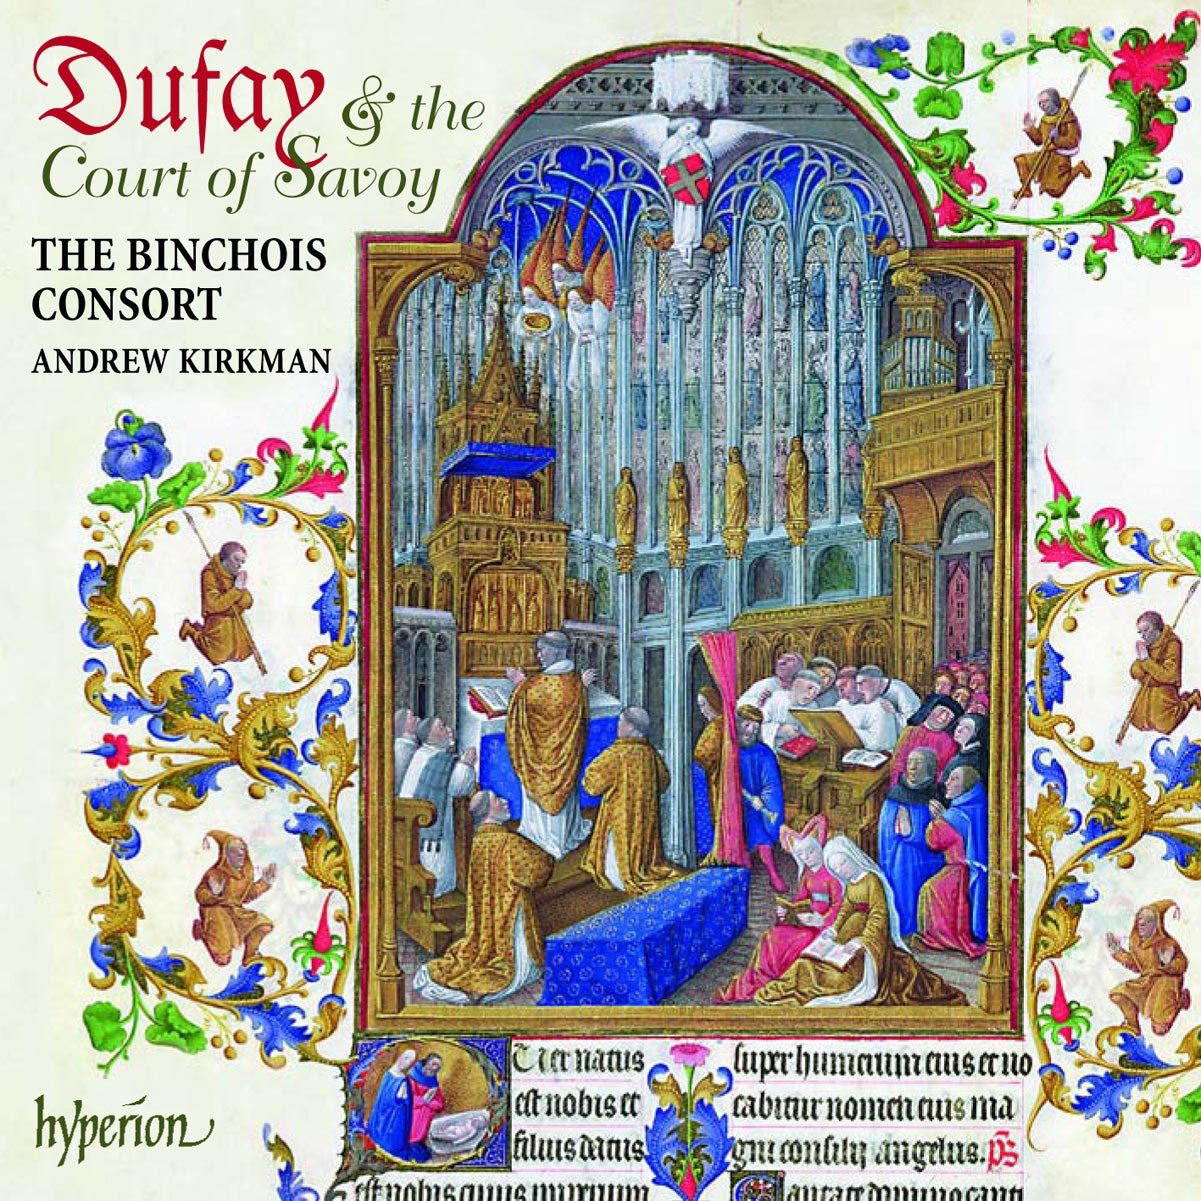 Dufay & the Court of Savoy by la face